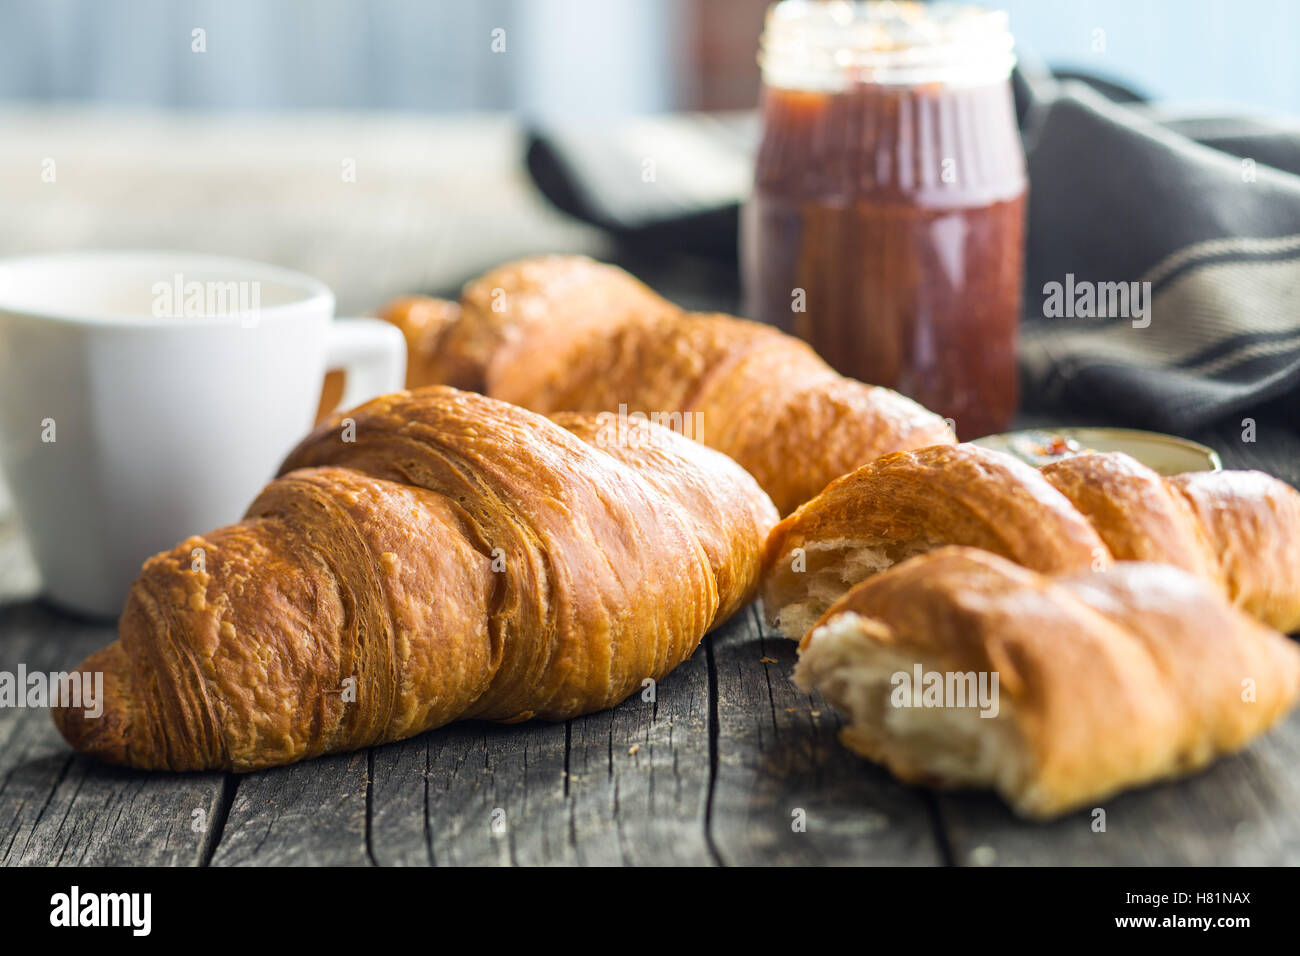 Tasty buttery croissants on old wooden table. - Stock Image